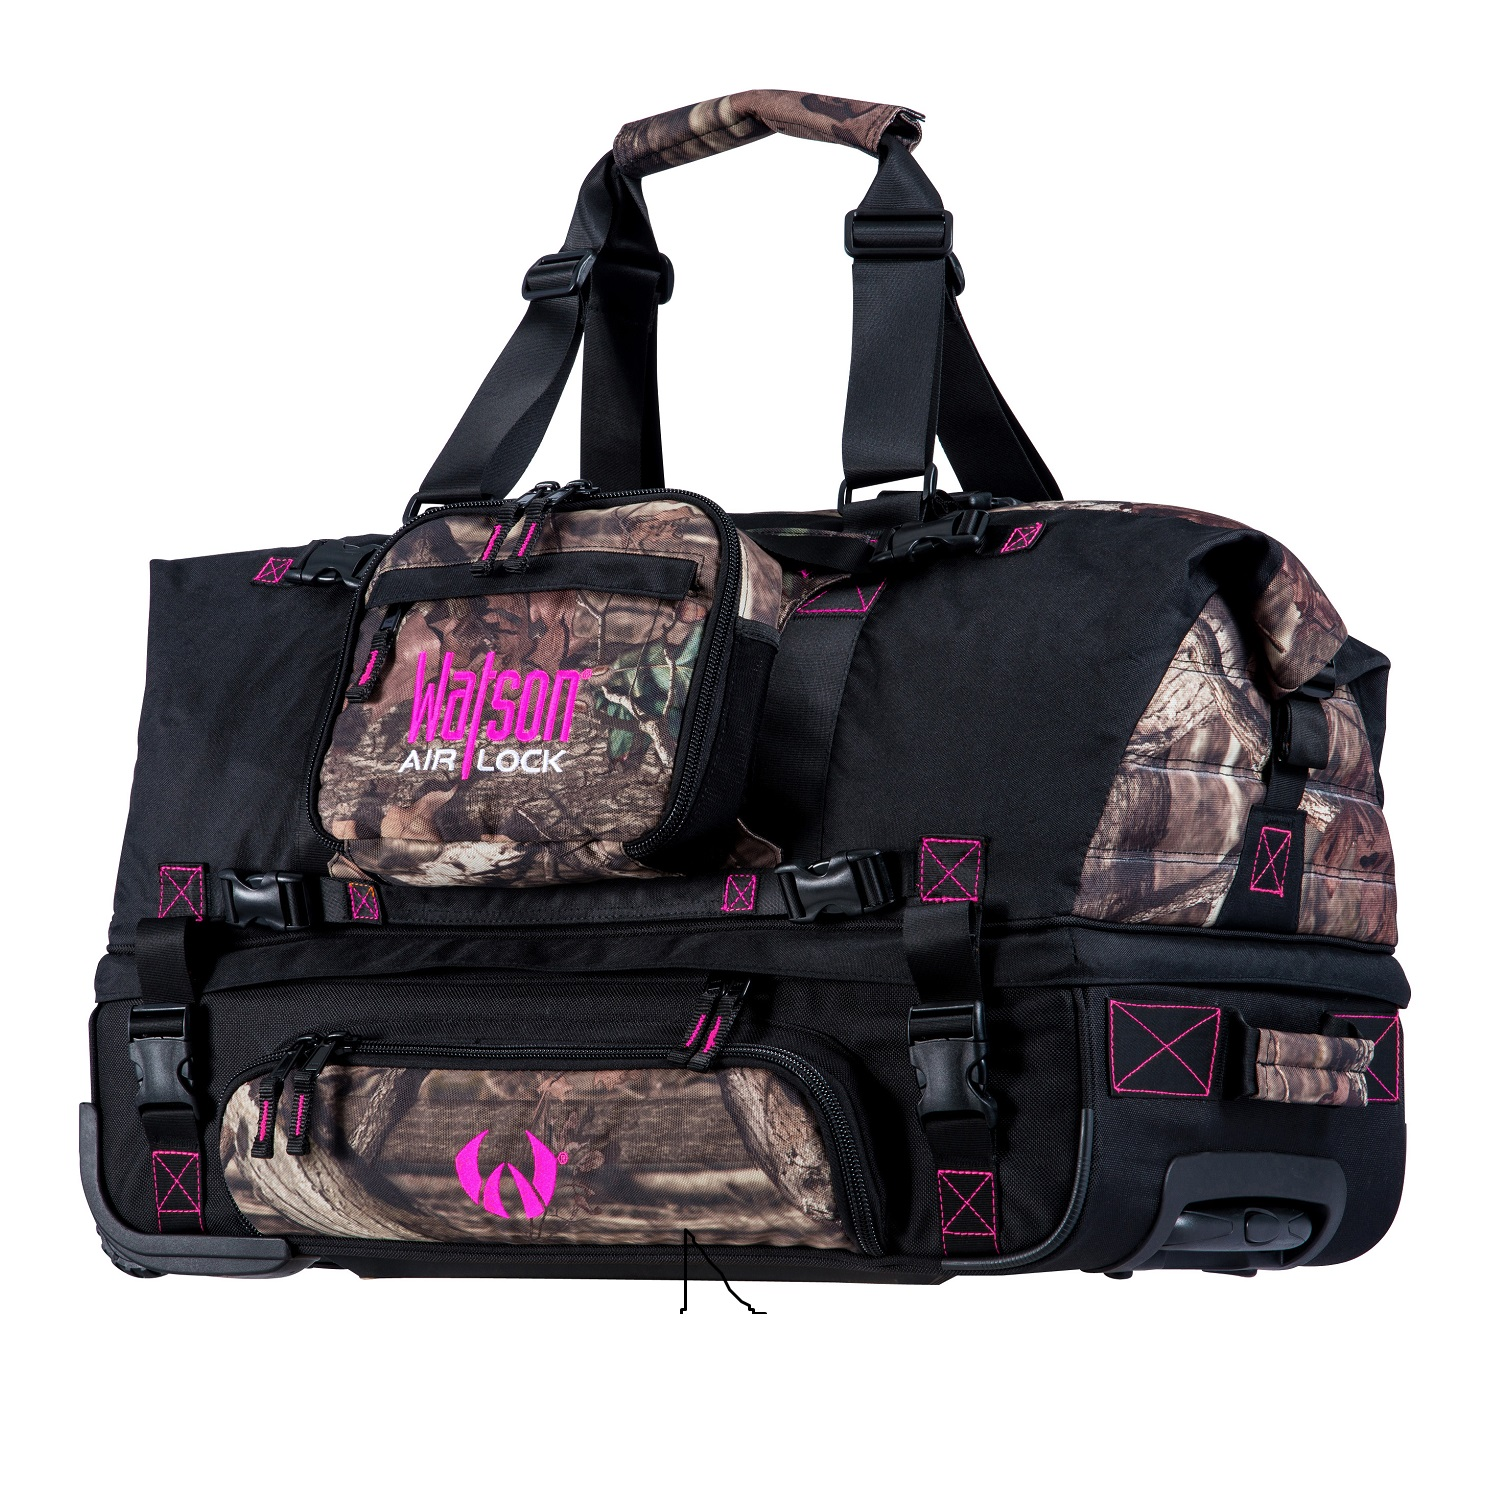 Watson Airlock Bottomless26 Travel Bag Pink/Mossy Oak WPBUIBRB3026